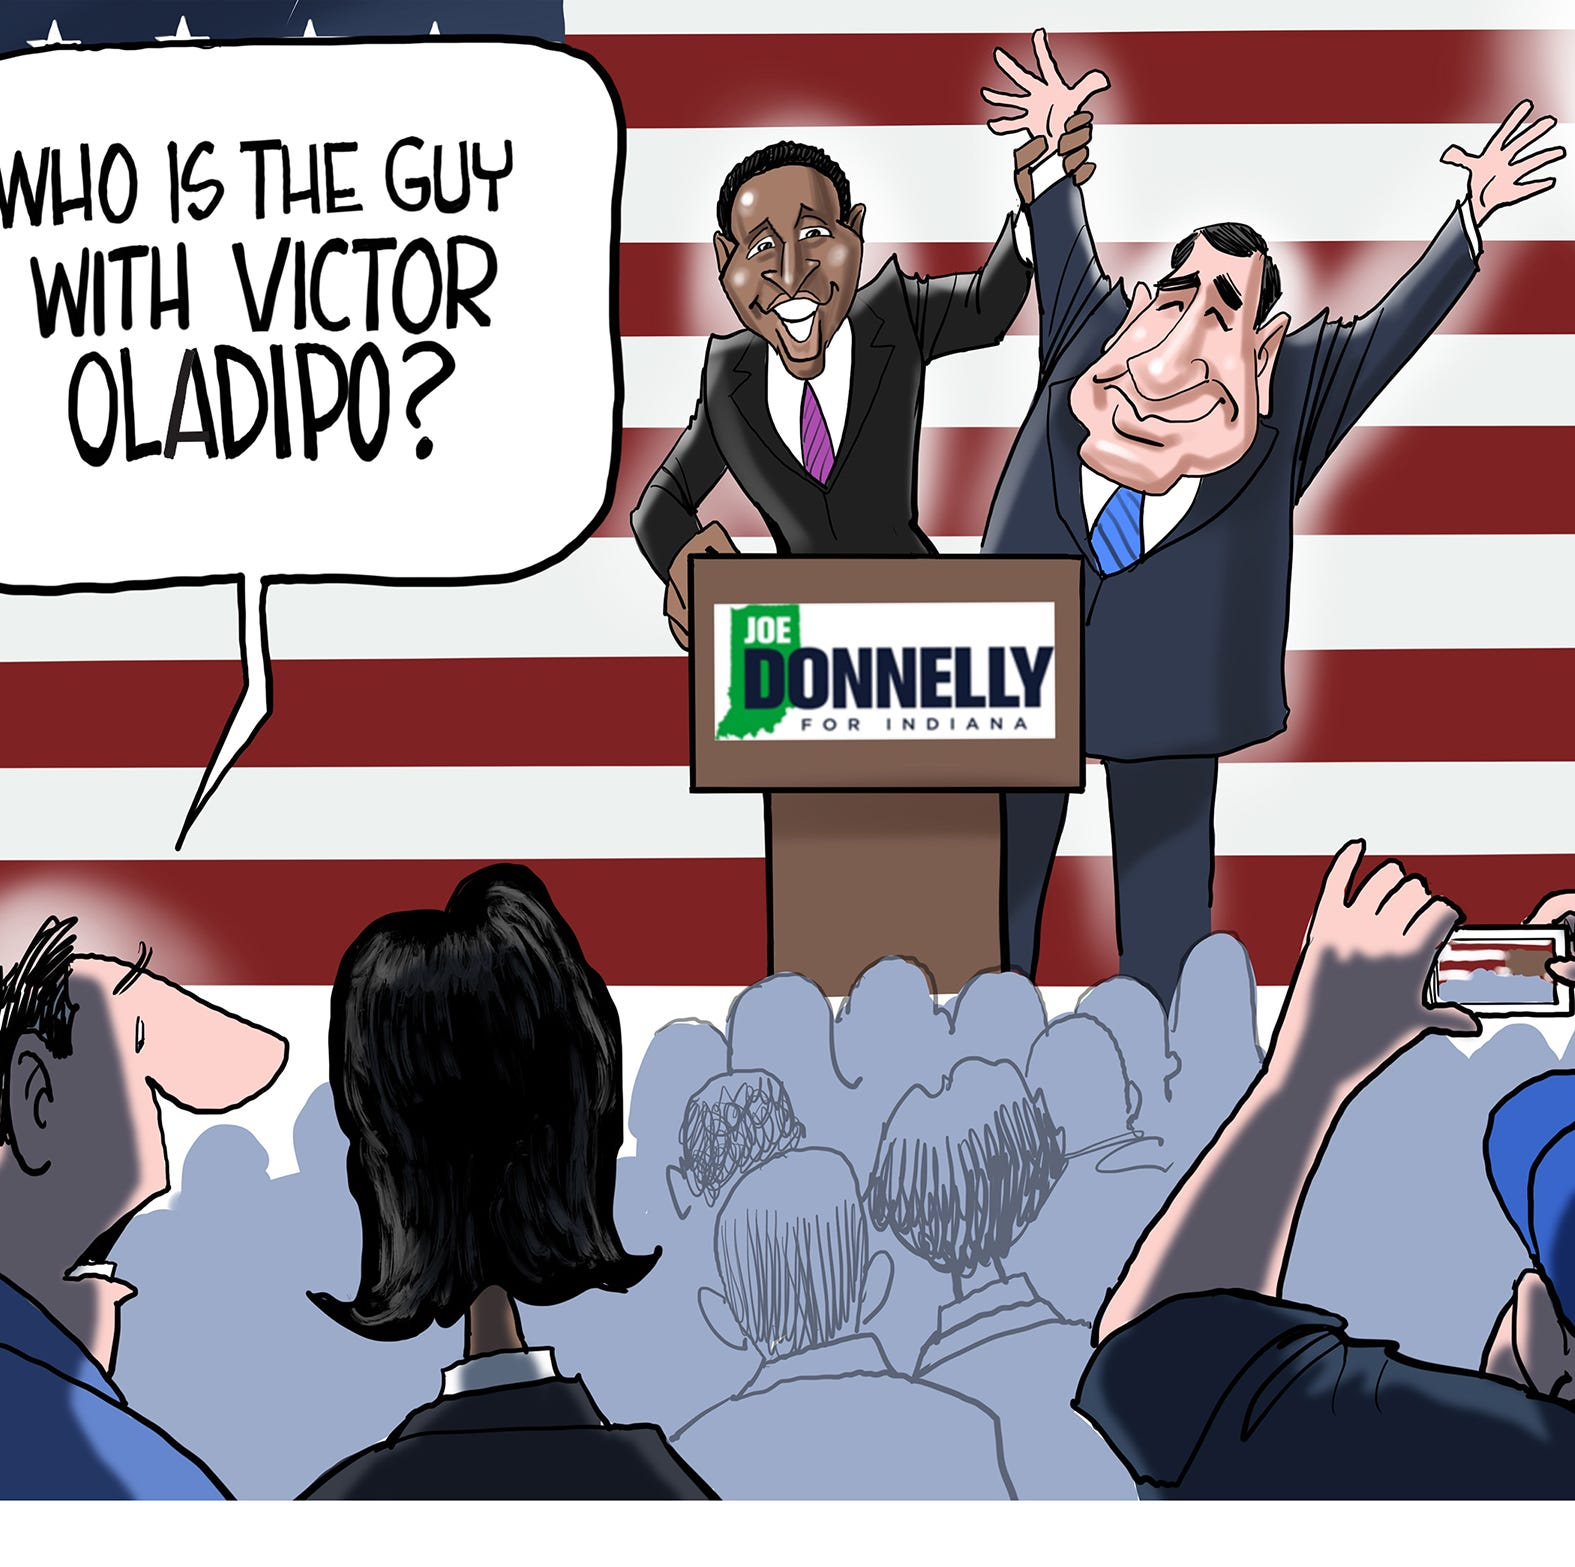 Cartoonist Gary Varvel: Oladipo endorses Donnelly